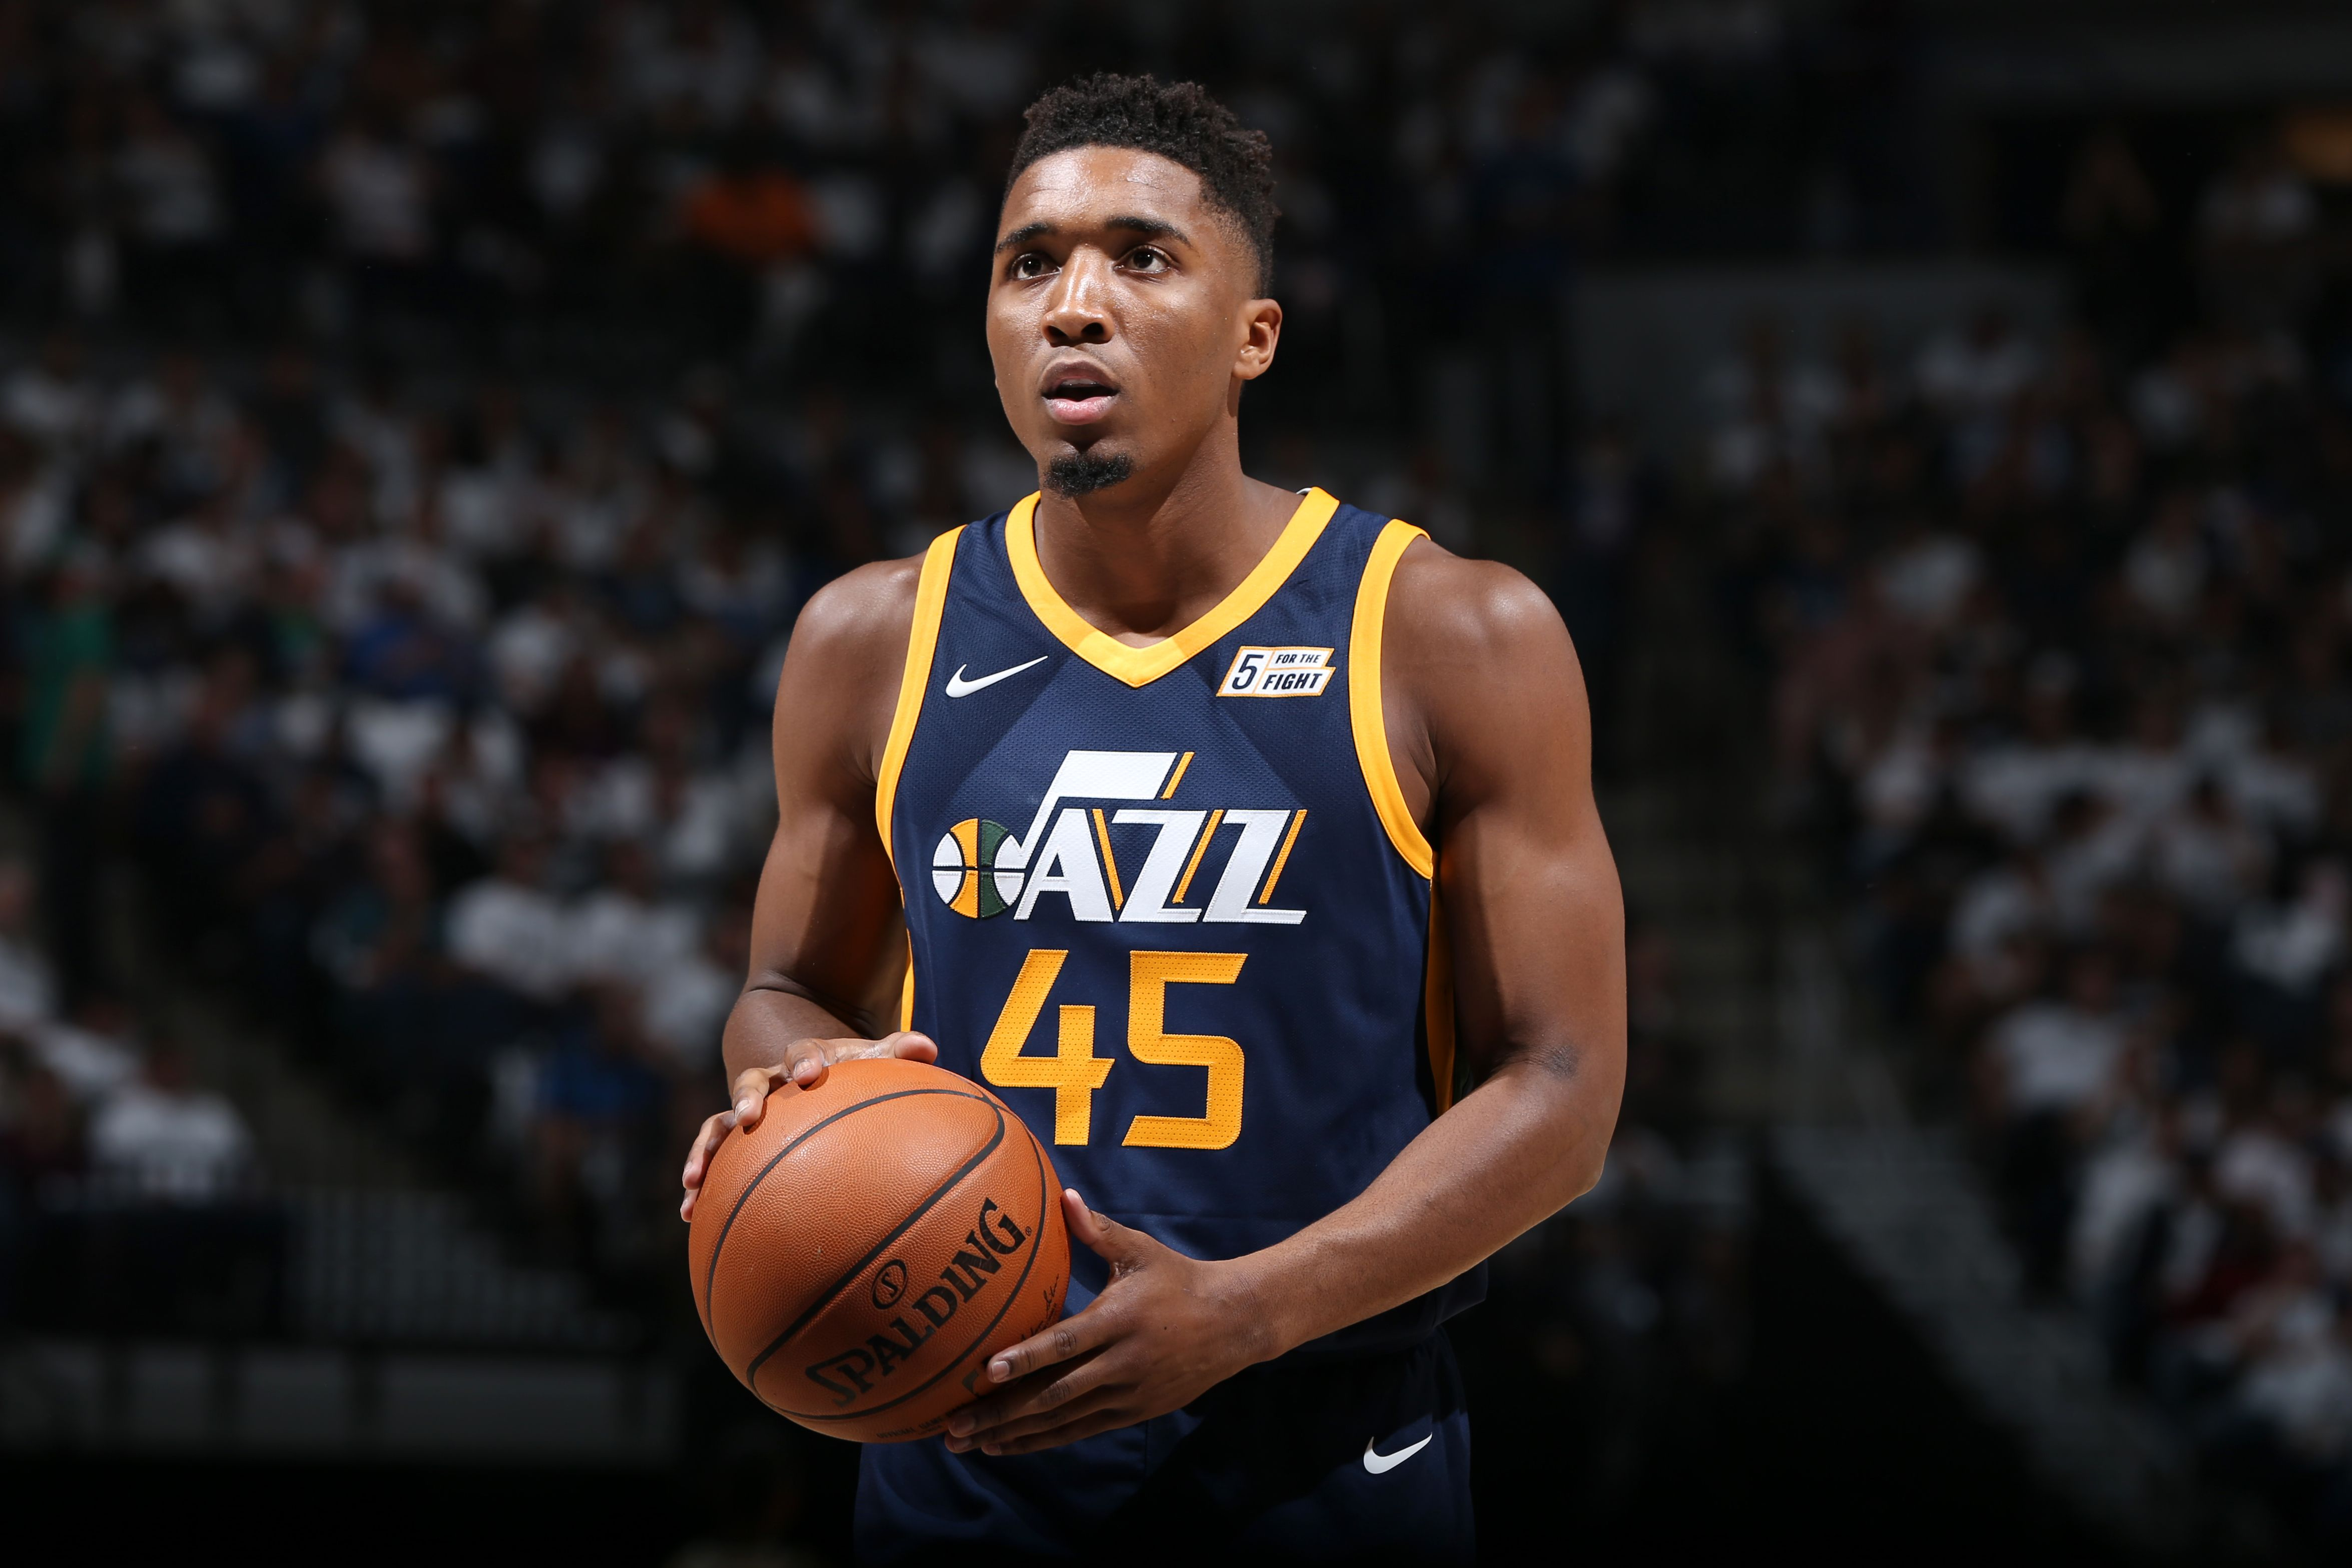 donovan mitchell widescreen wallpaper 446